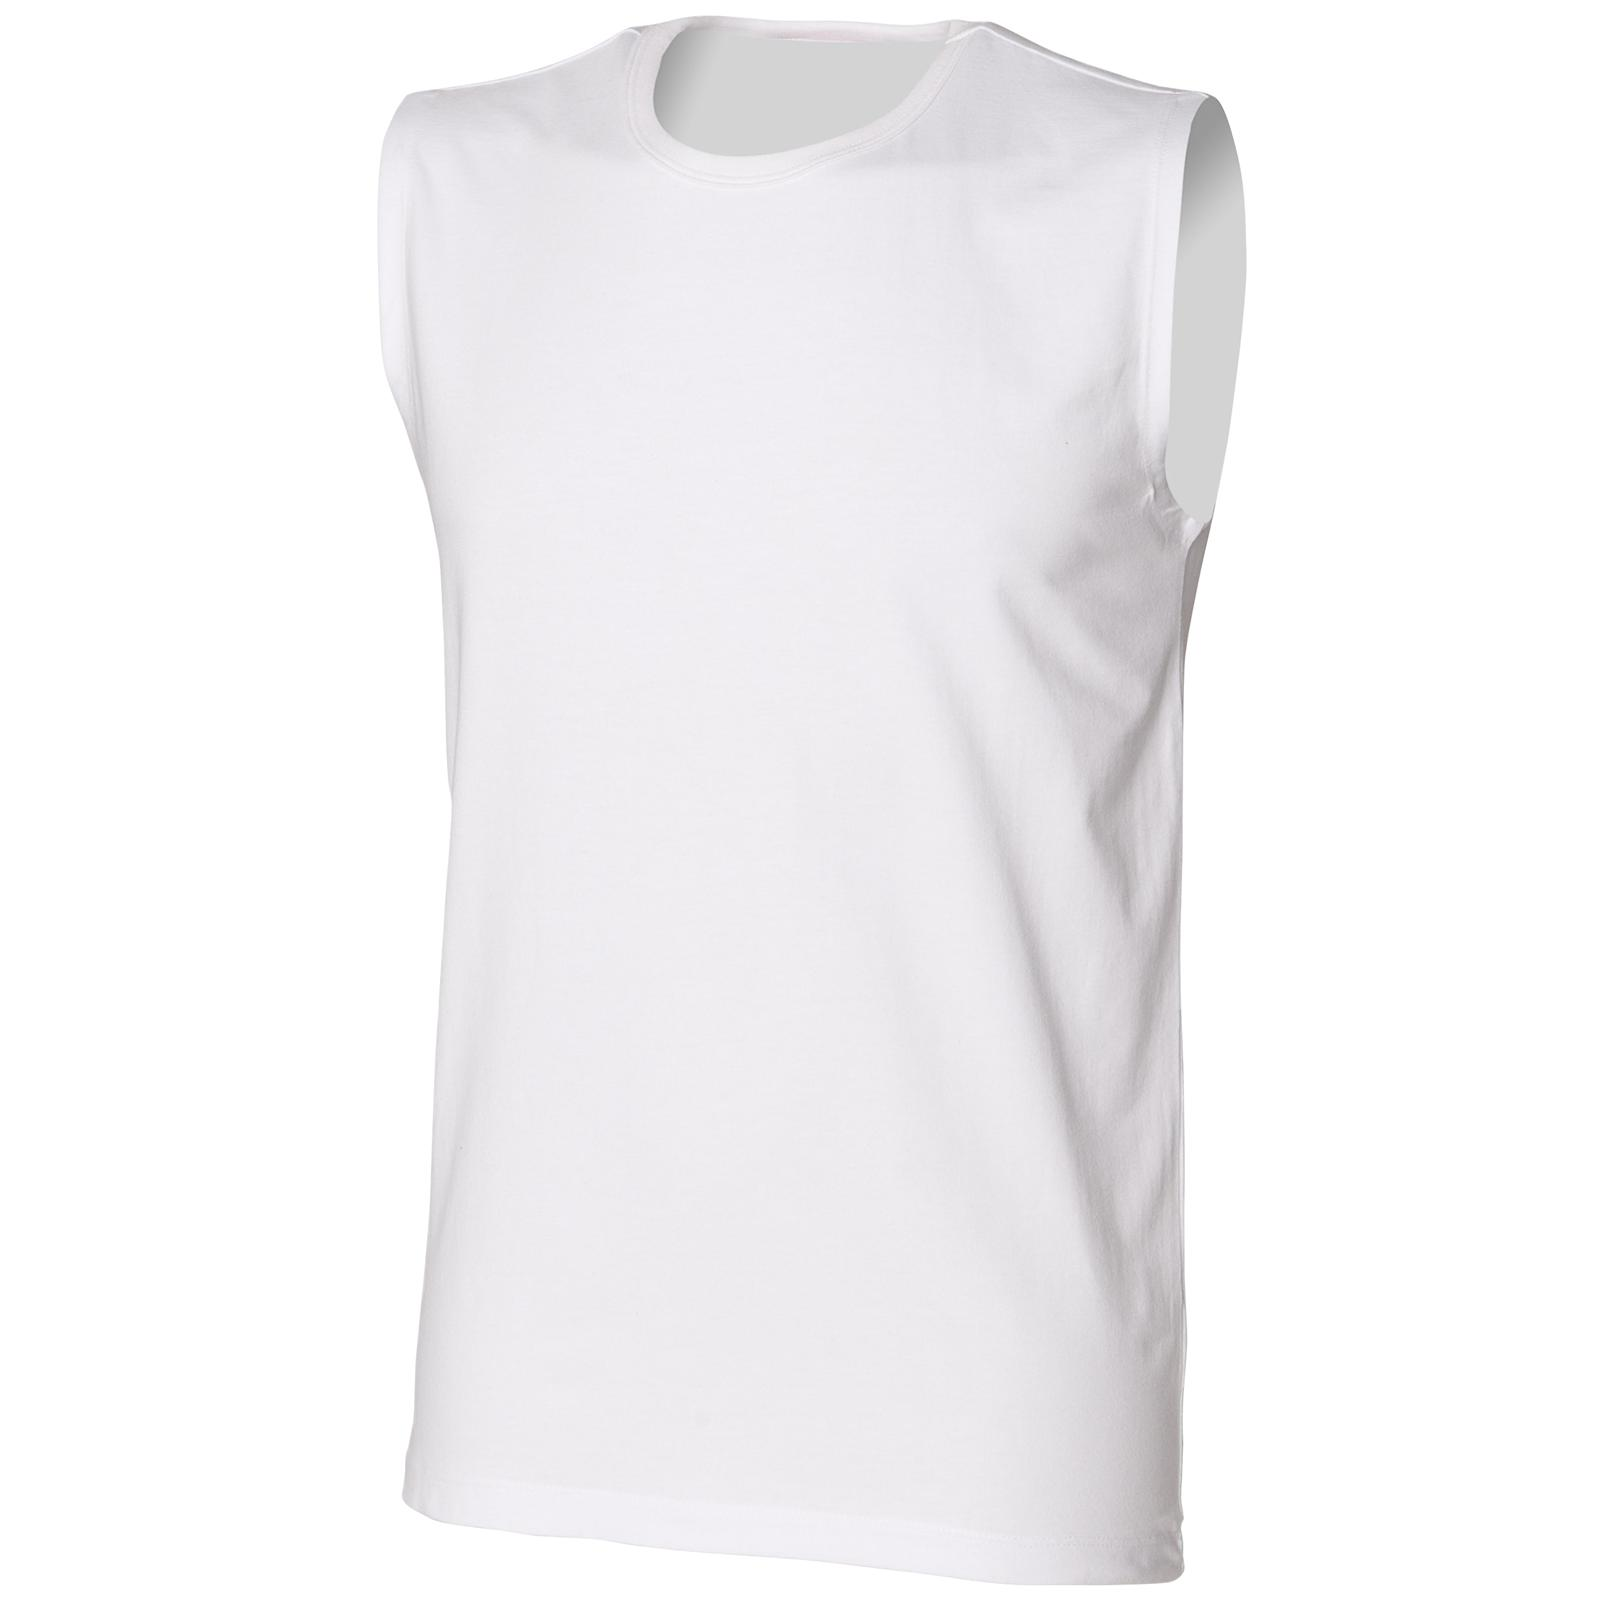 Related: mens white jean vest mens white dress vest mens white suit vest mens white denim vest mens white vest underwear. Include description. Categories. Selected category All. Clothing, Shoes & Accessories. Men's T-Shirts; Men's American Muscle White Workout Vest Tank Top Bodybuilding Beast USA Gym Tee. New (Other) $ Buy It Now.